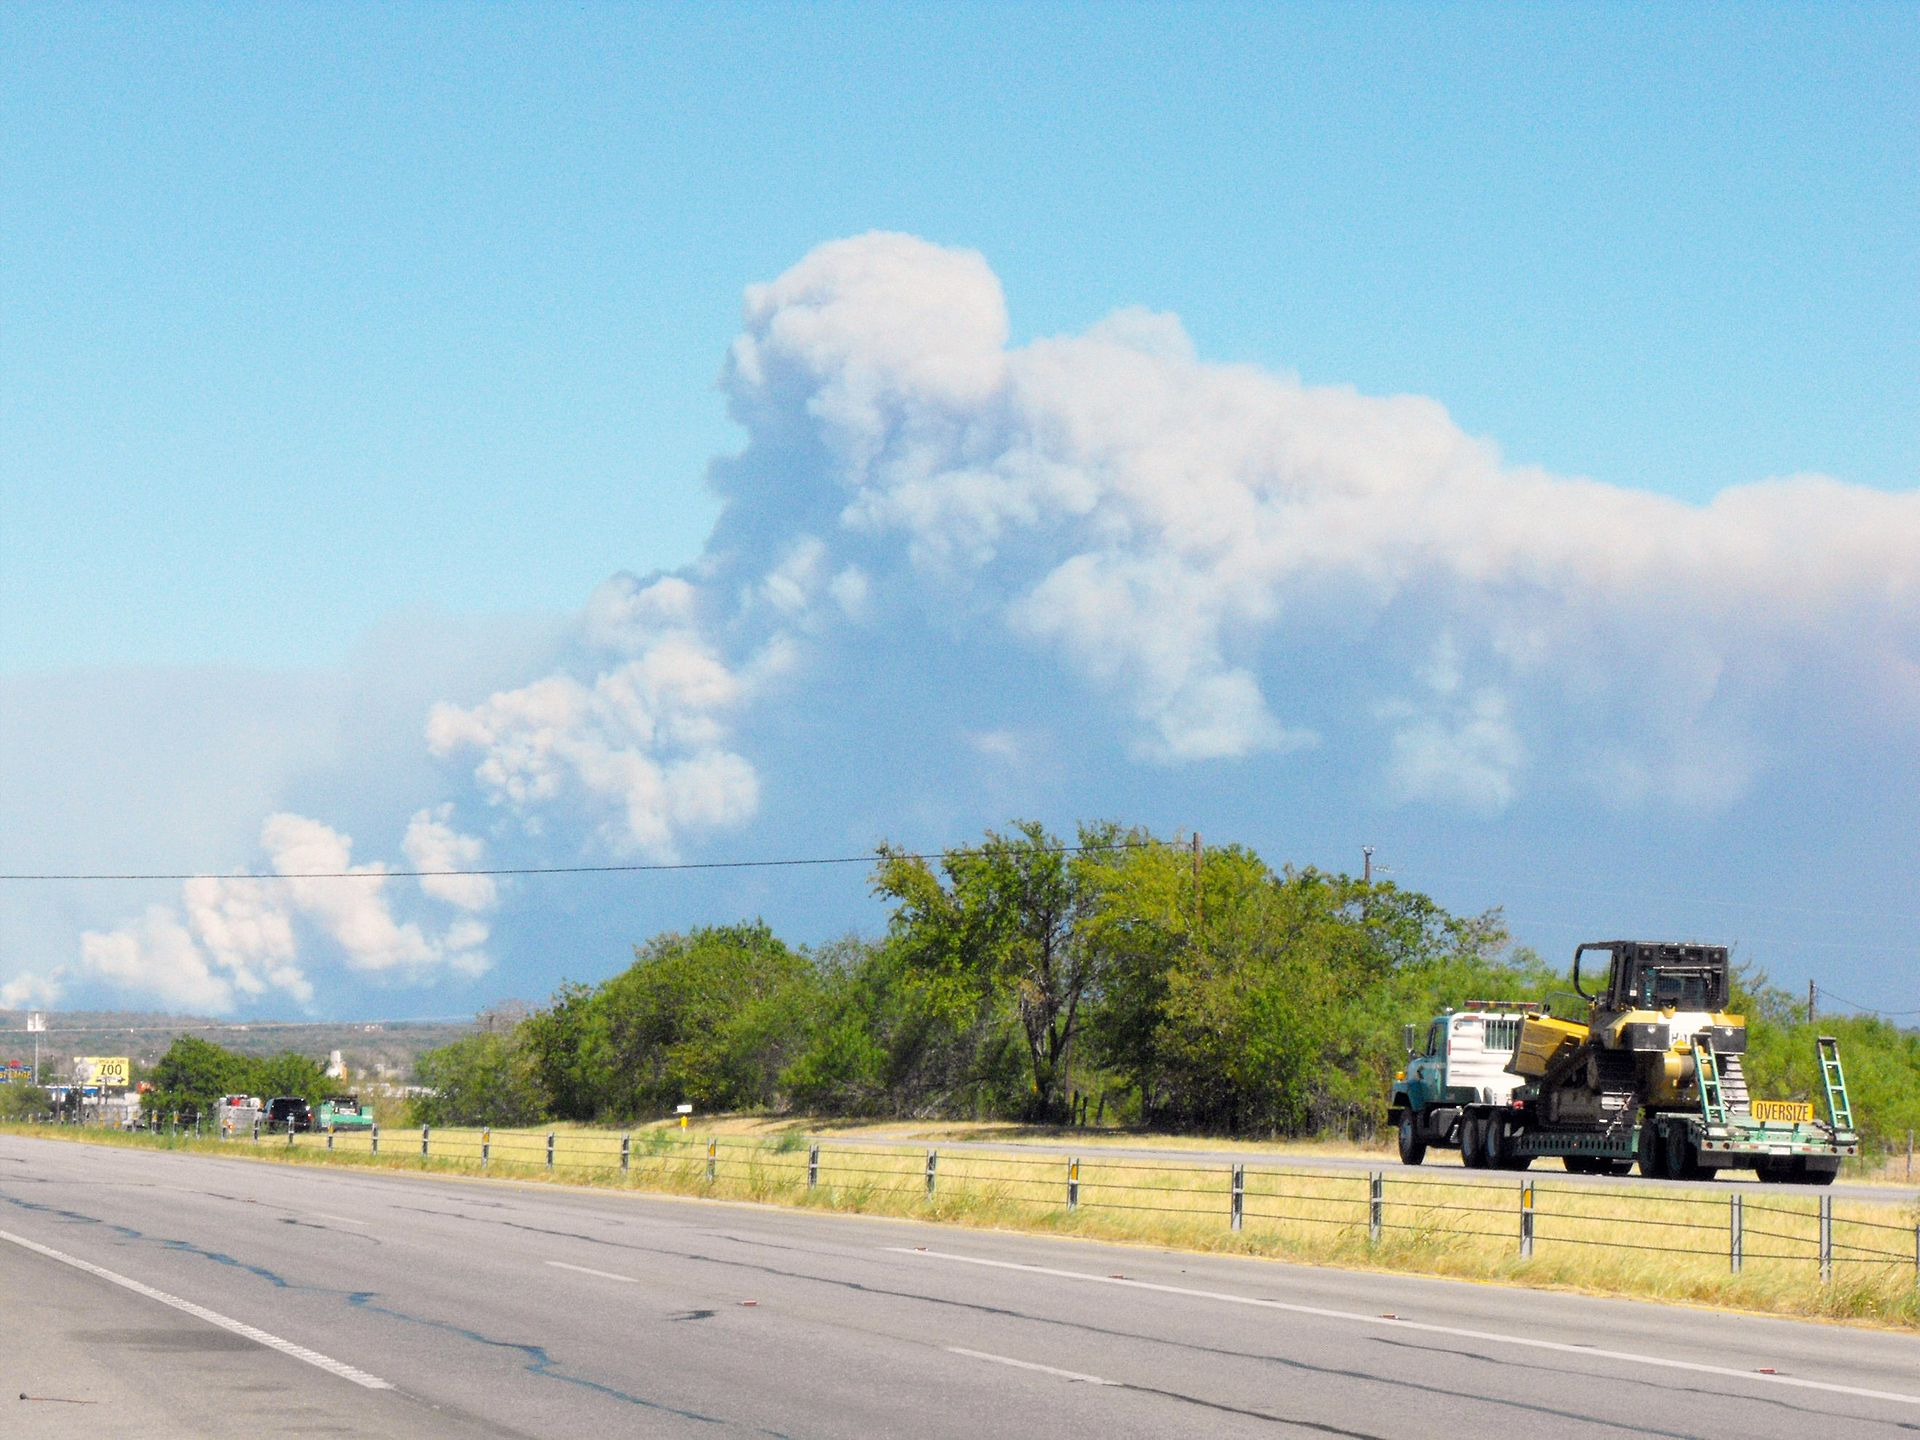 The Bastrop County Complex fire was a major wildfire that struck Bastrop County in the U.S. state of Texas in September 2011.